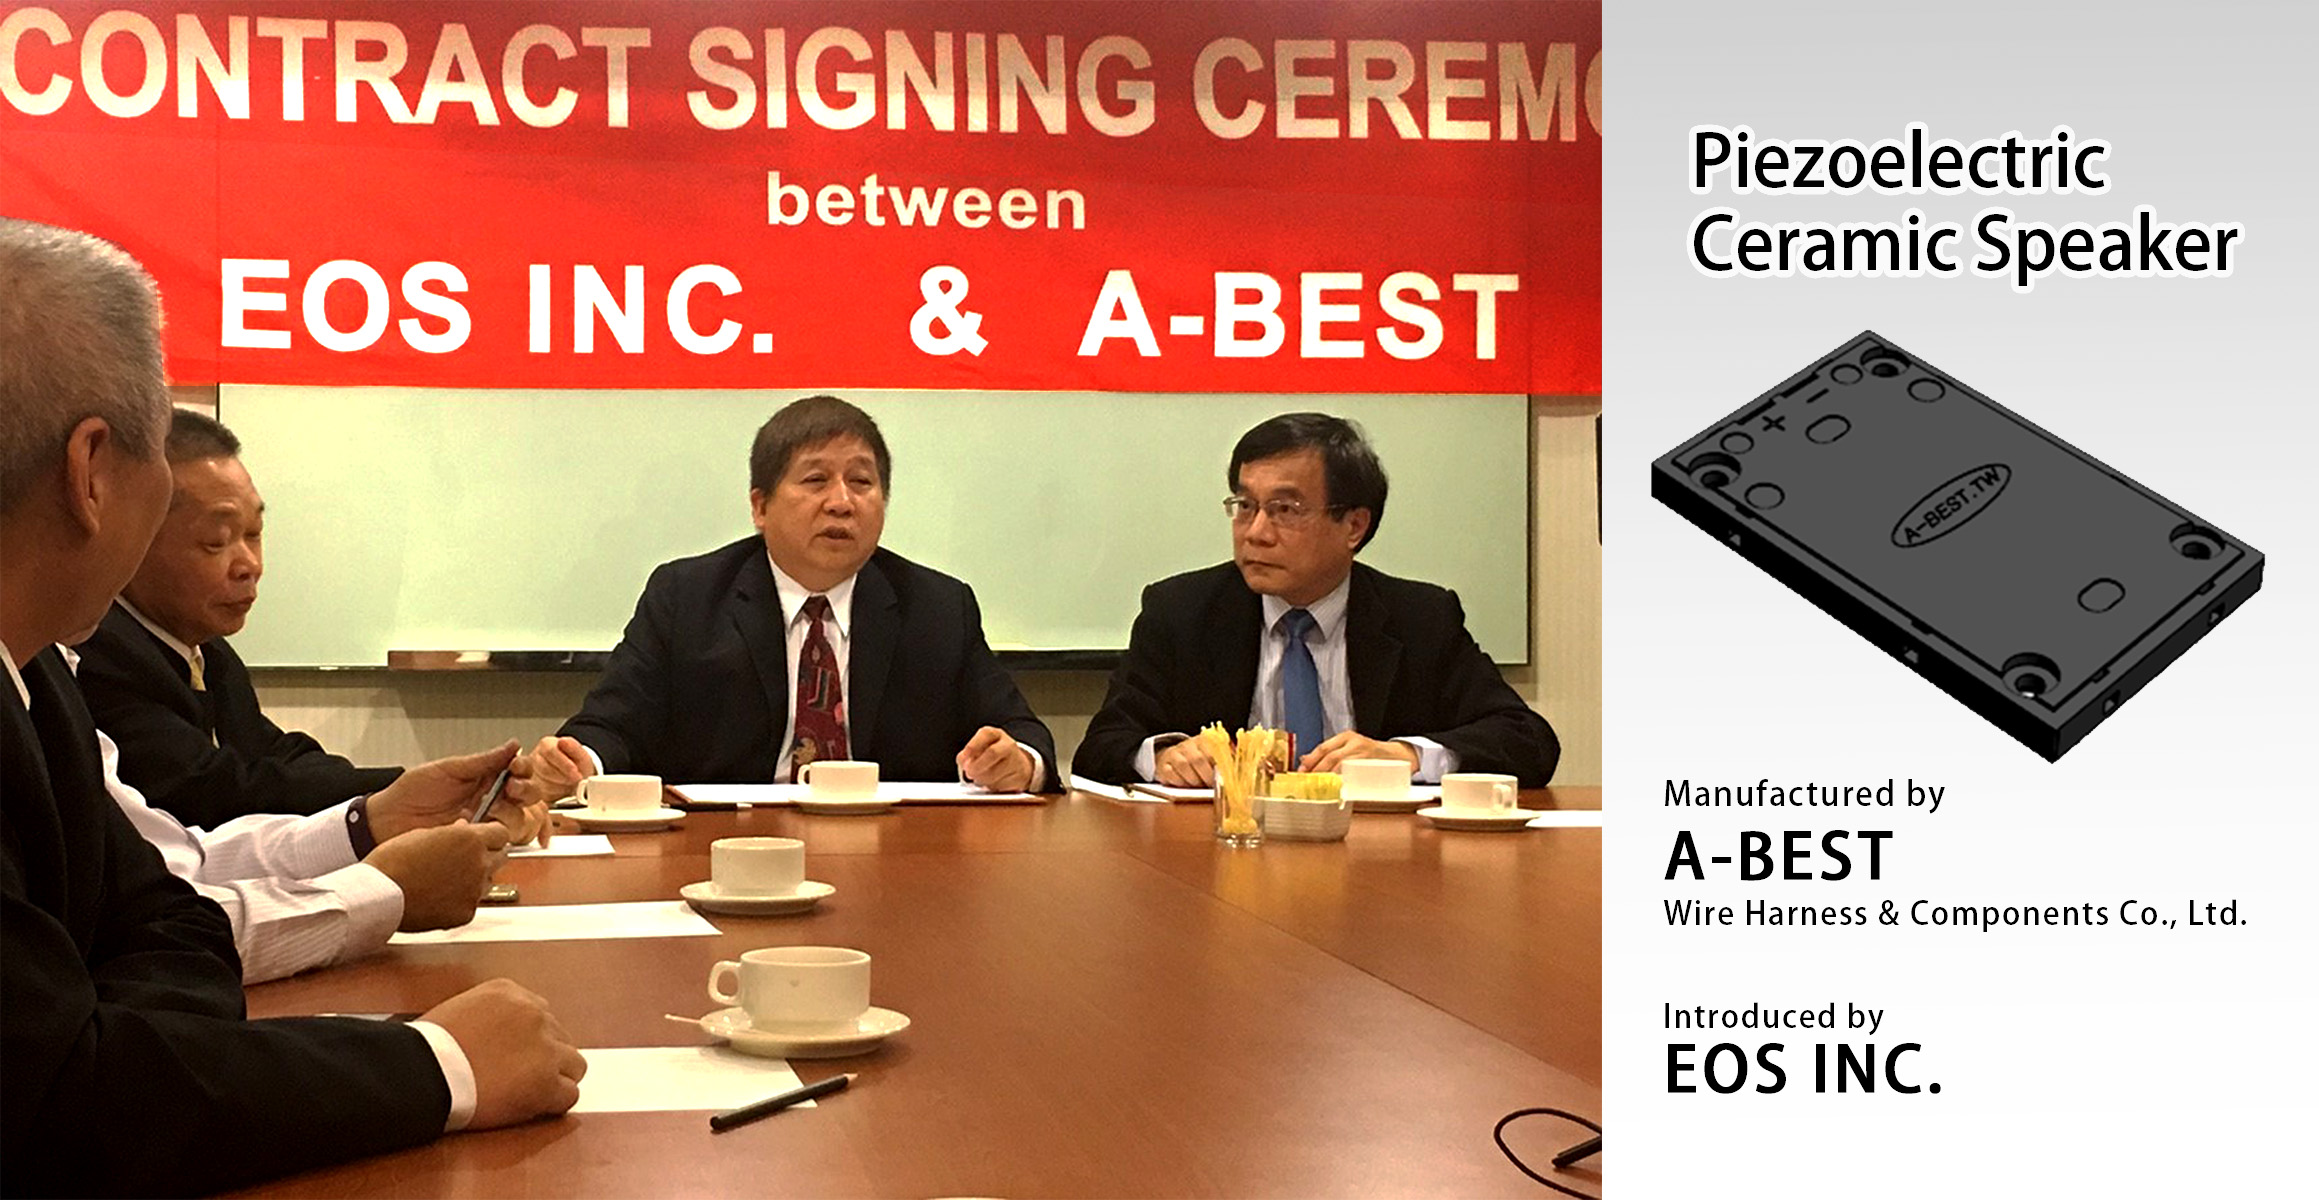 EOS INC & A-BEST CONTRACT SIGNING Photo